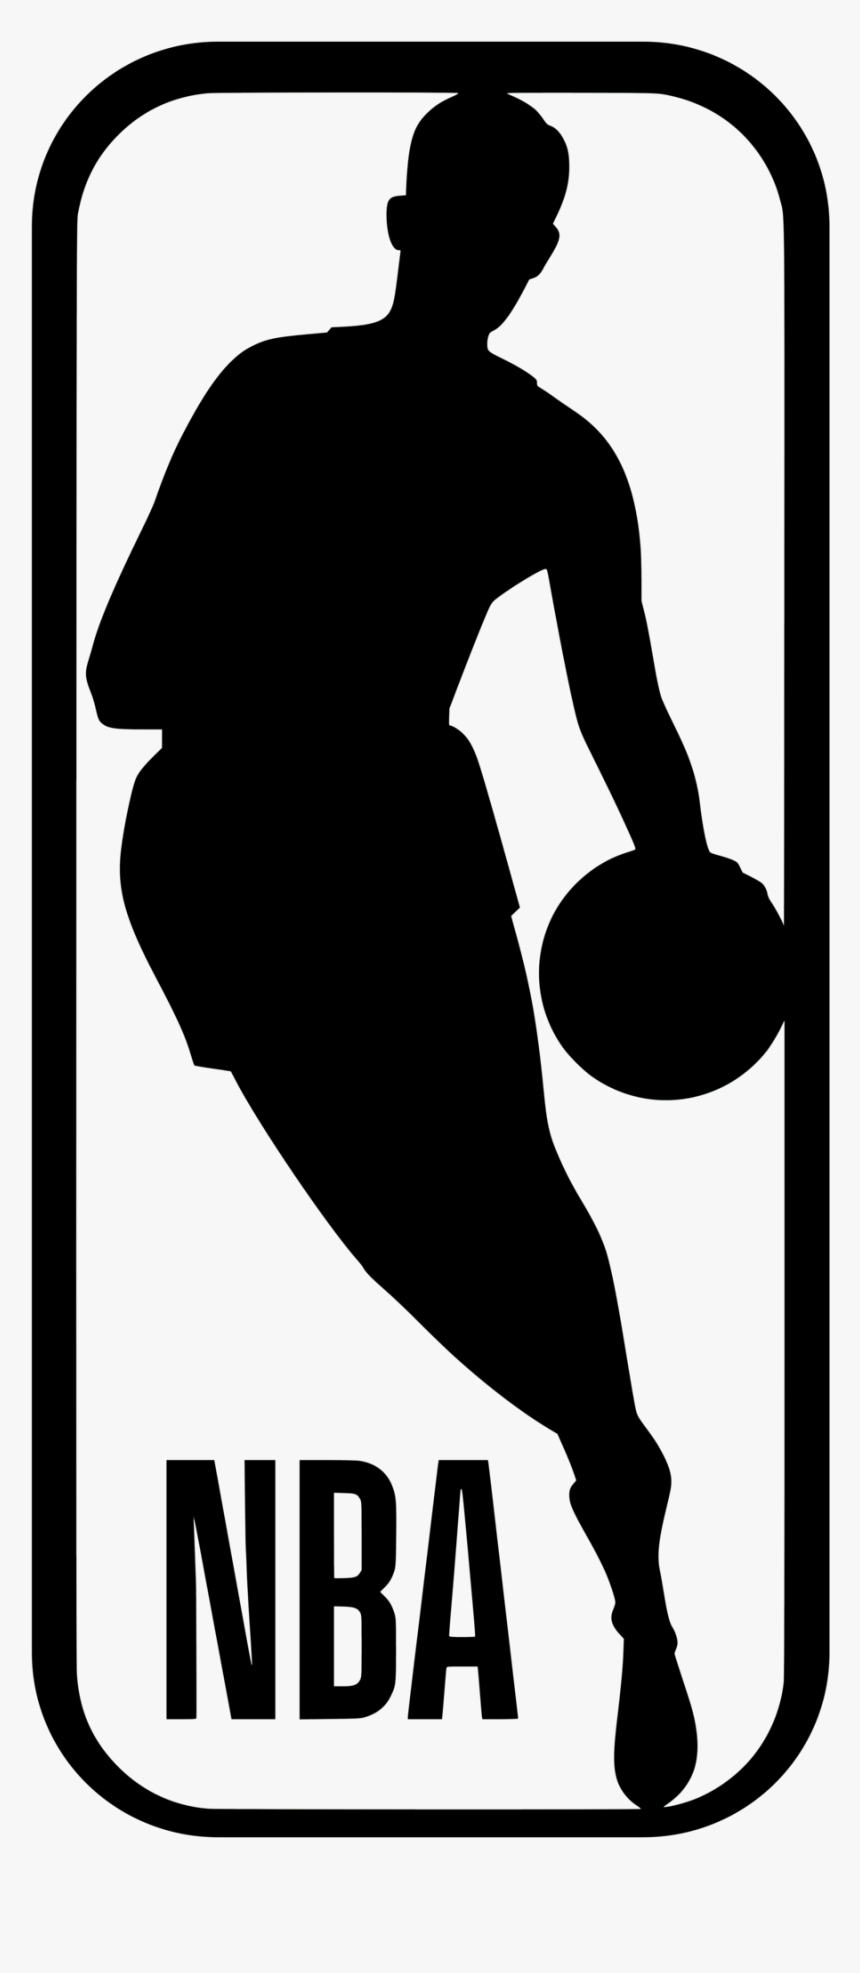 773-7731663_nba-logo-black-and-white-png